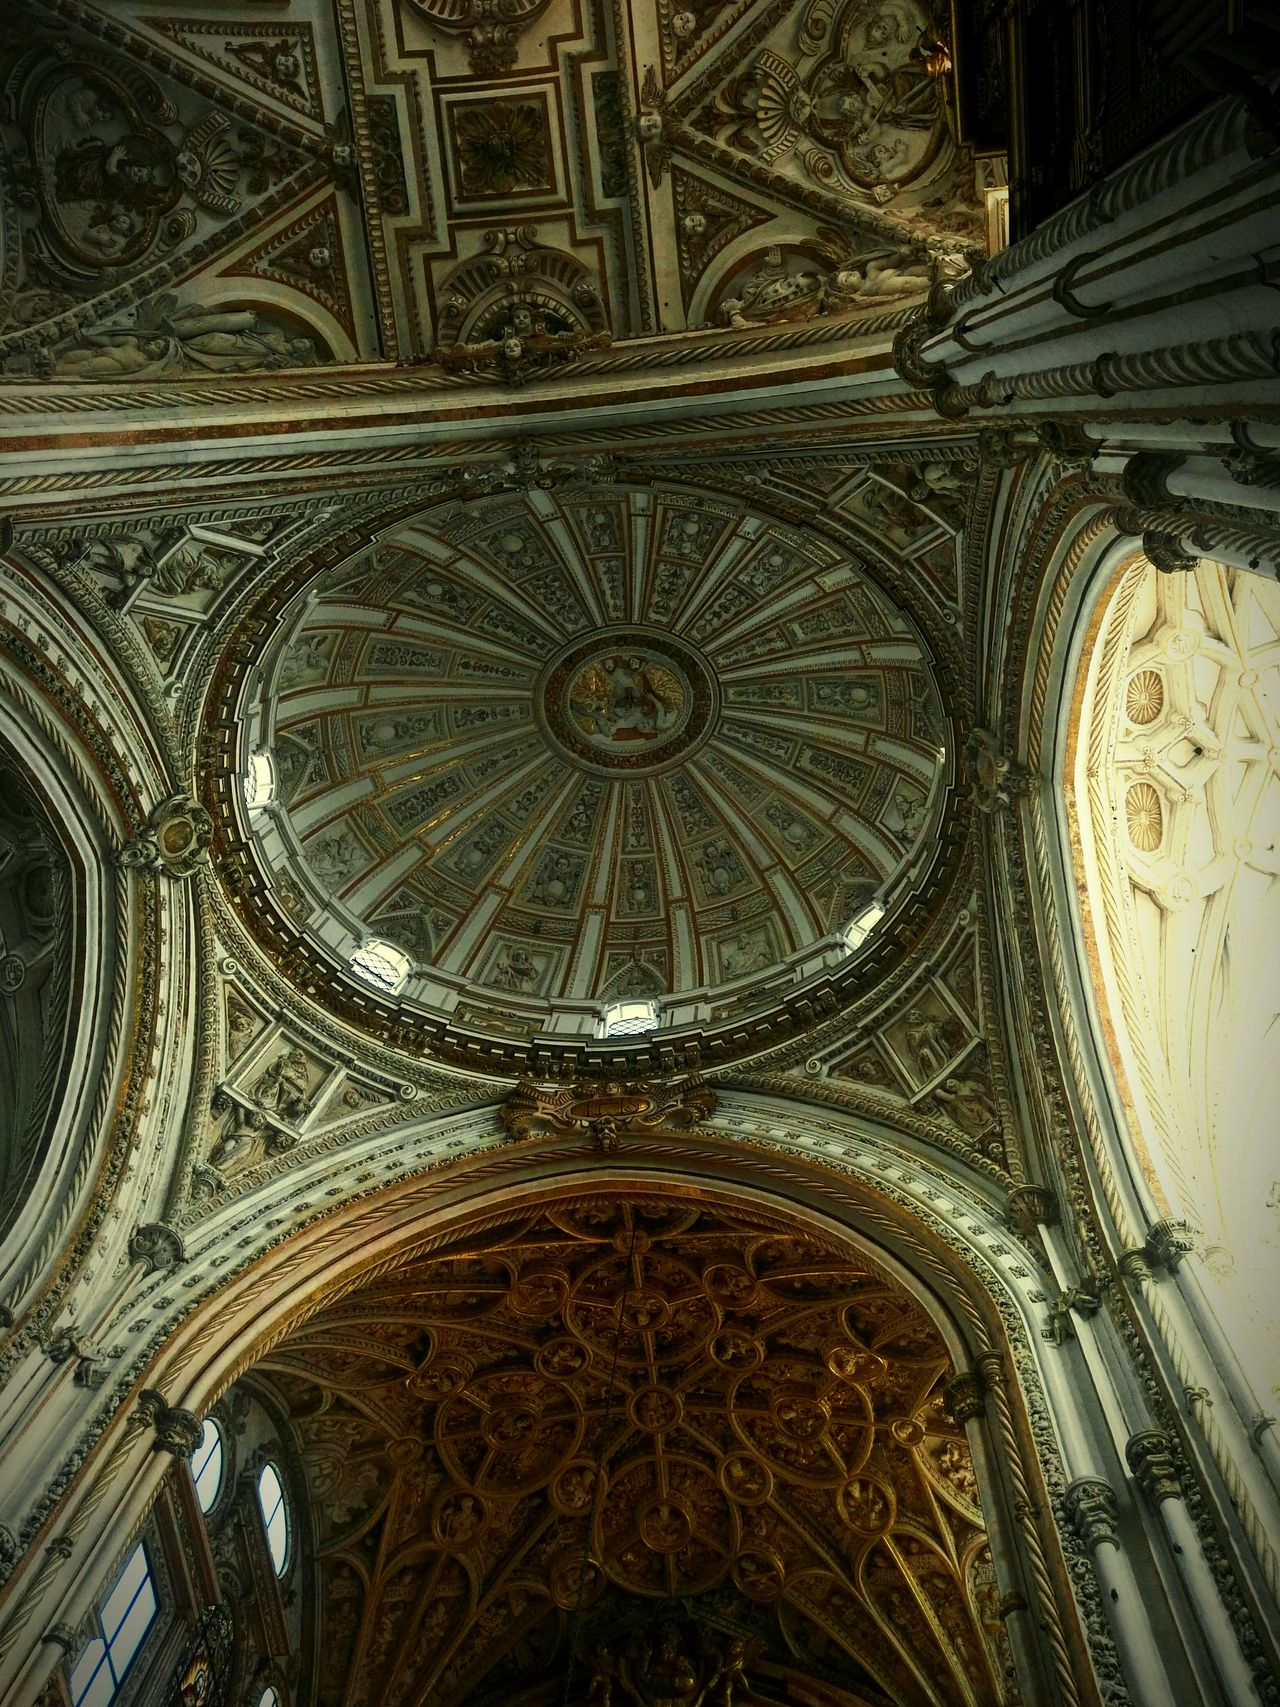 Bóveda mezquita Architecture Indoors  No People Dome Córdoba Cordobacapital Cordoba Spain Mezquitacatedraldecórdoba Boveda Ceiling Pattern Built Structure Day First Eyeem Photo